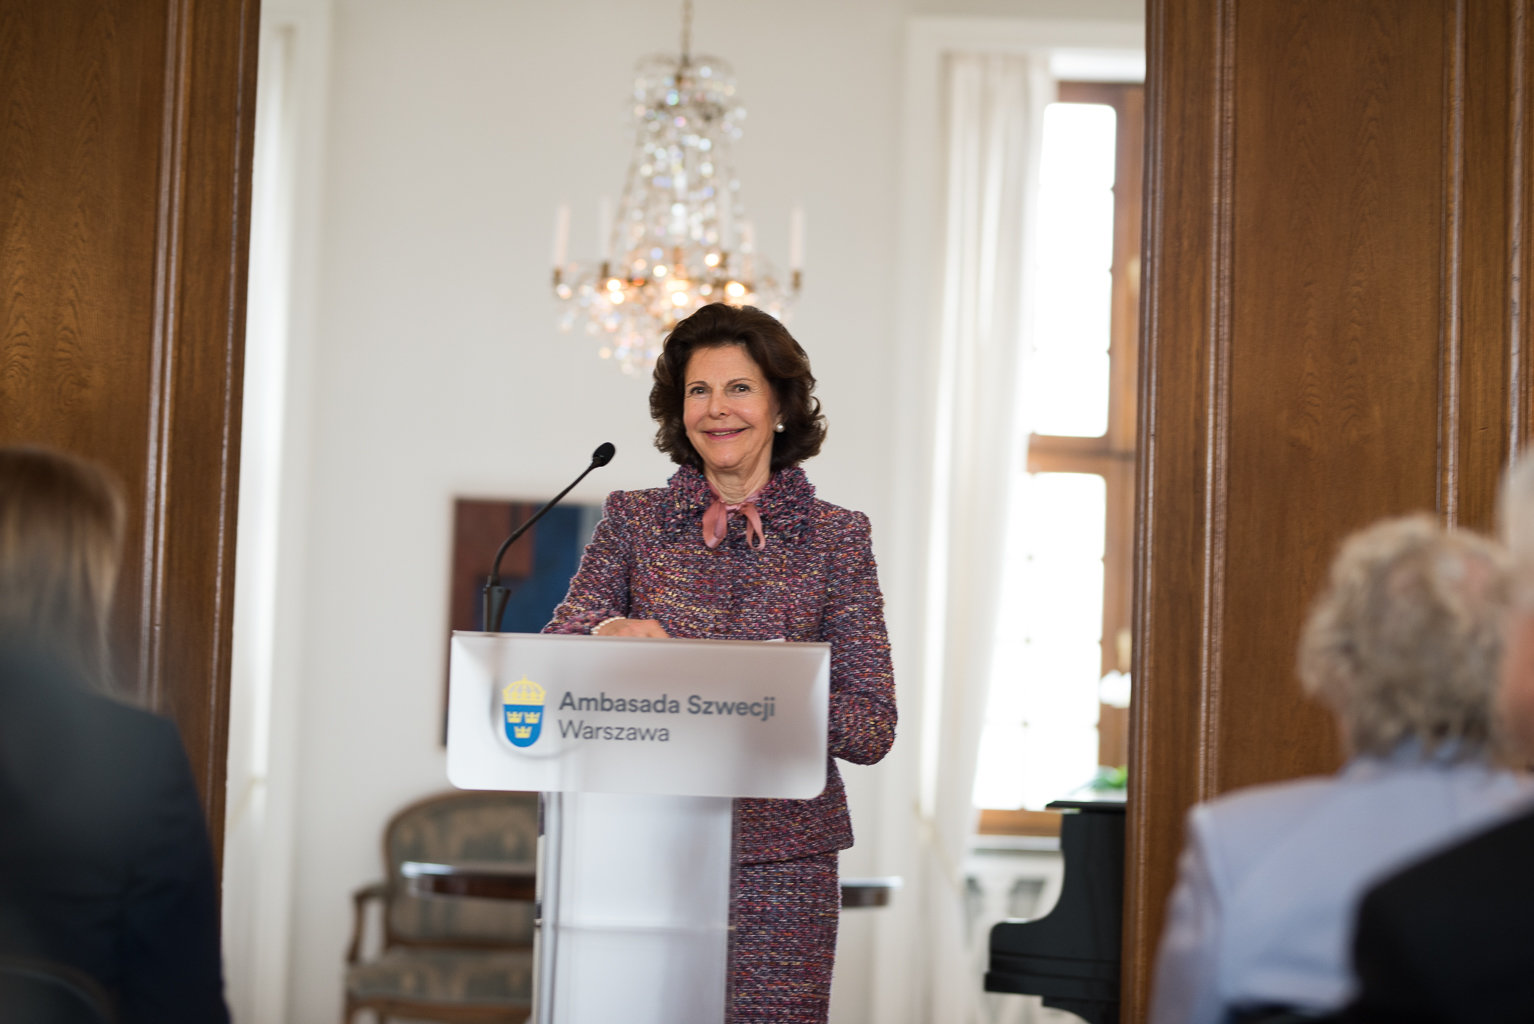 Her Majesty Queen Silvia of Sweden visits Poland